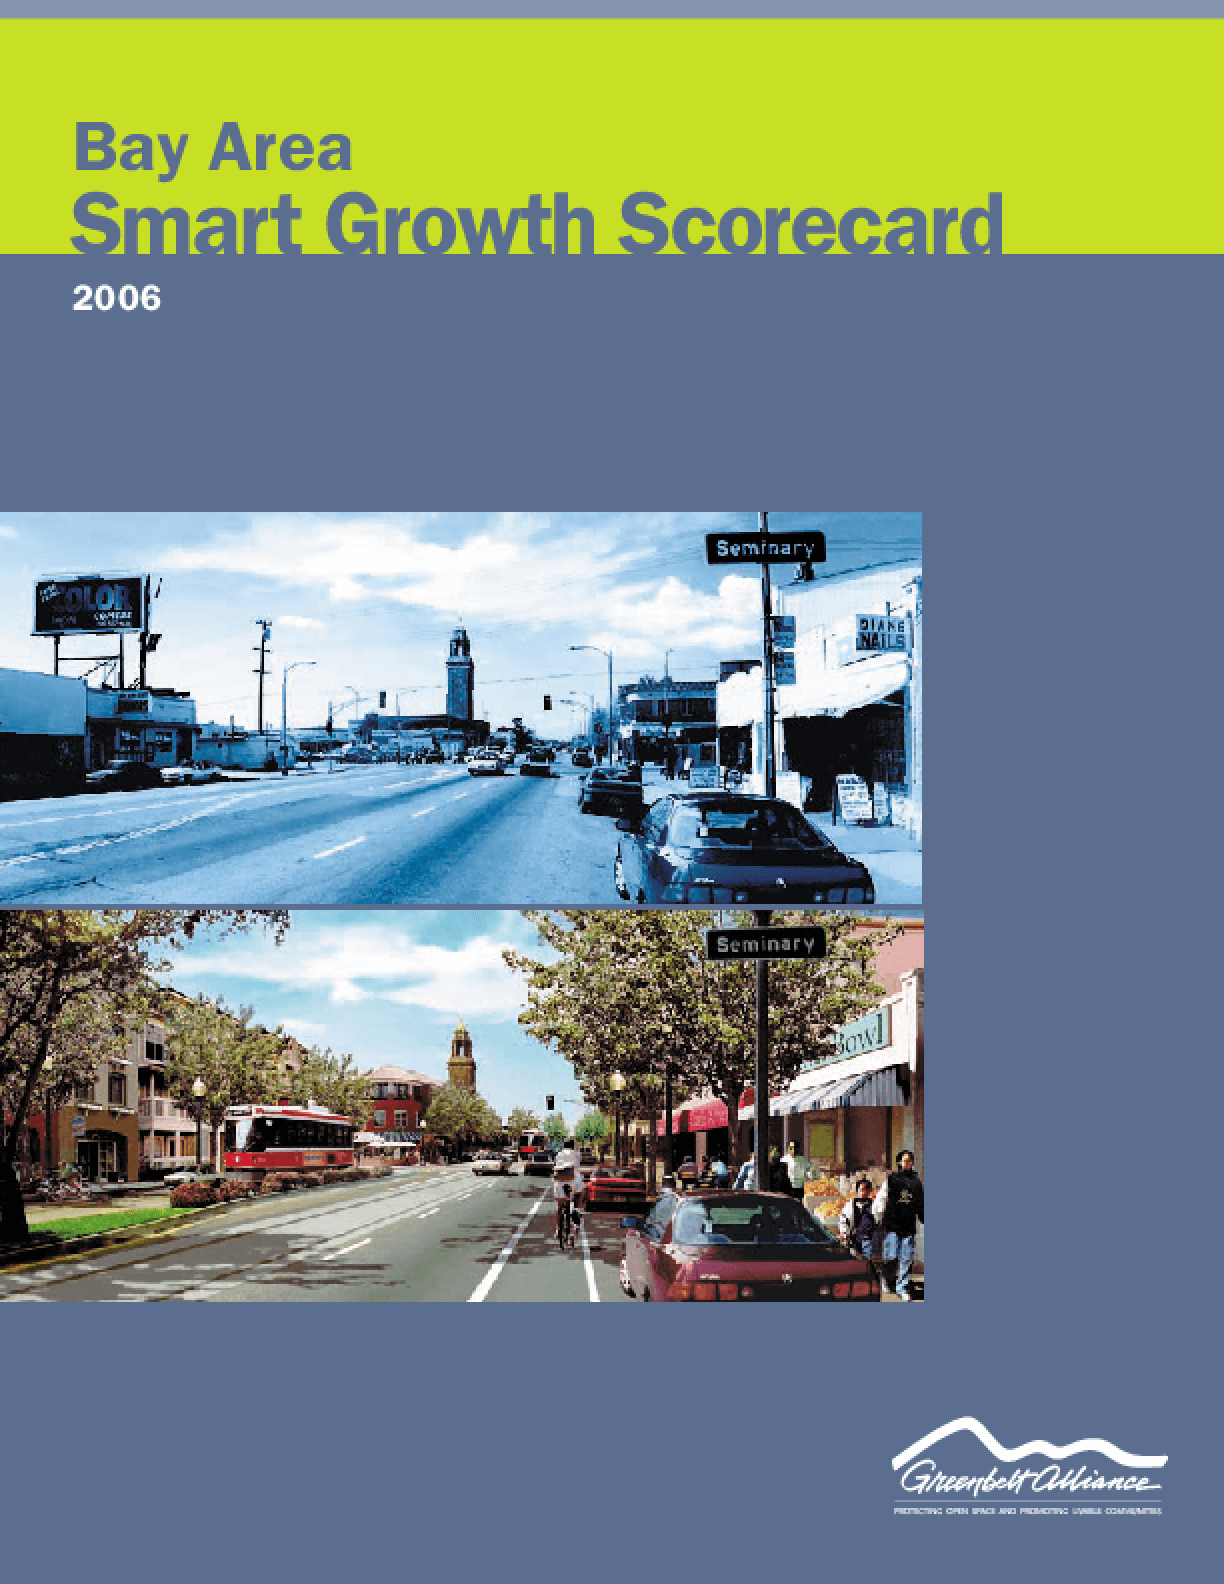 Bay Area Smart Growth Scorecard